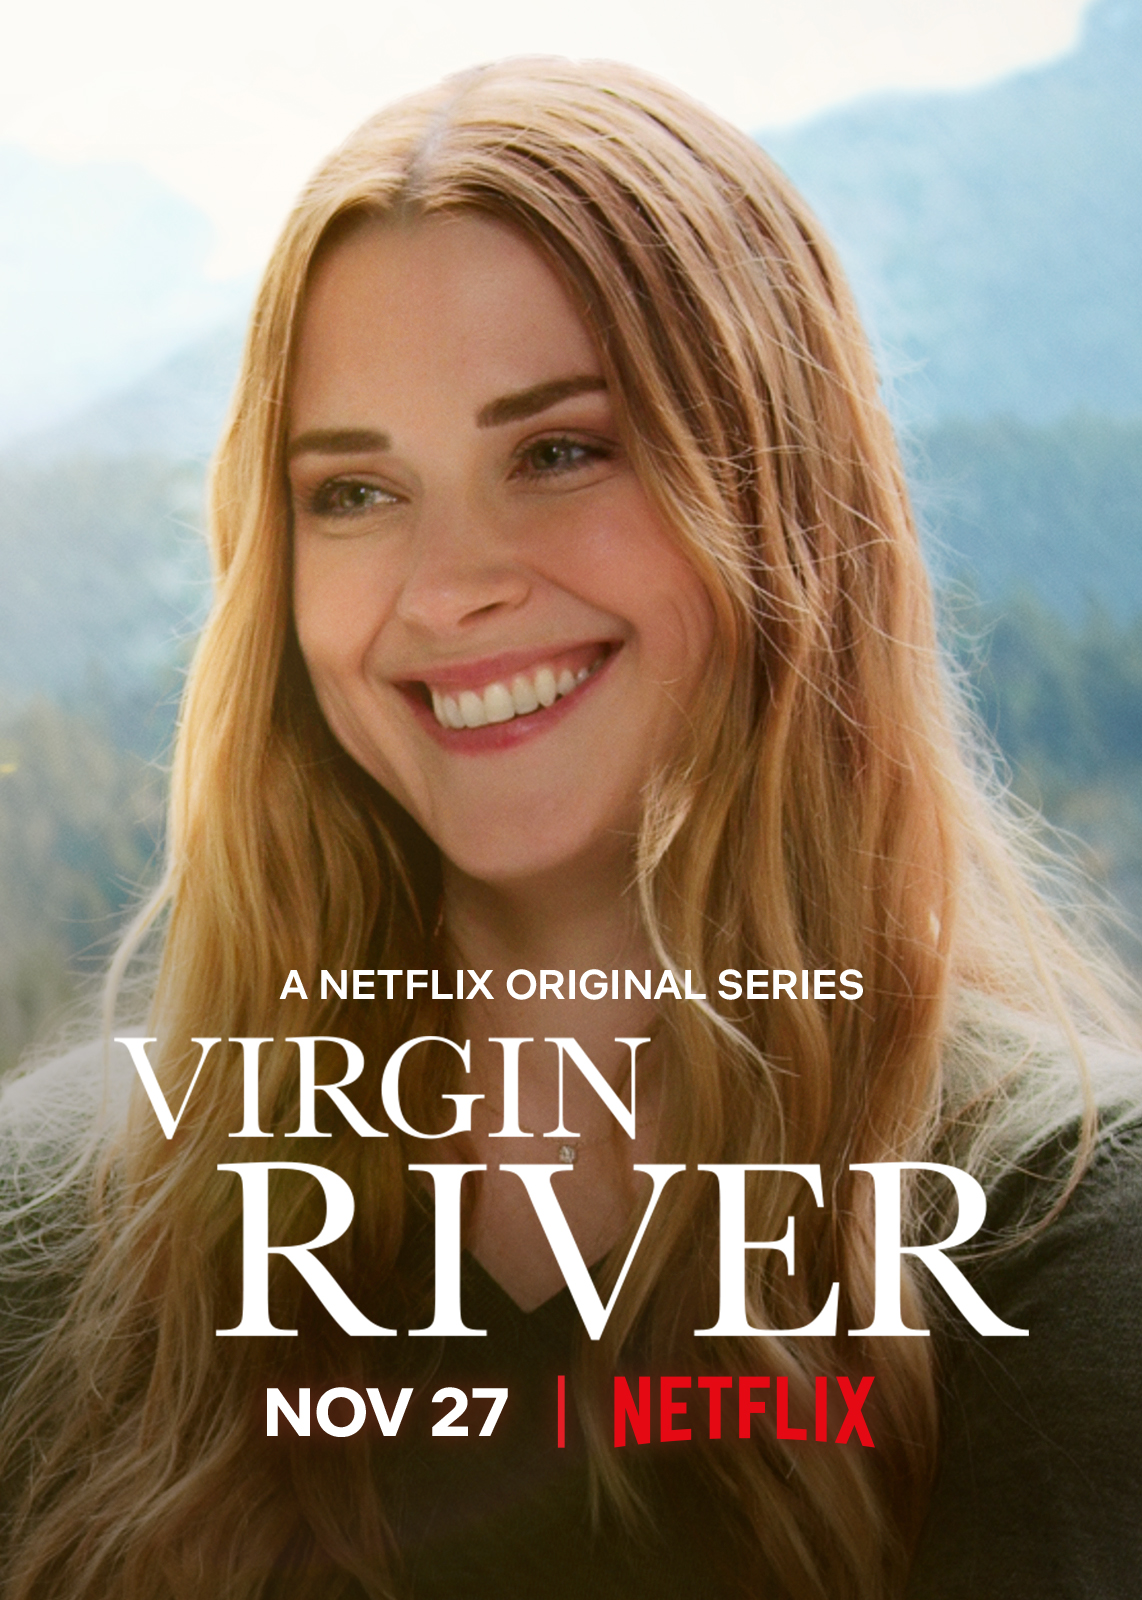 Virgin River Season 1 (2019)